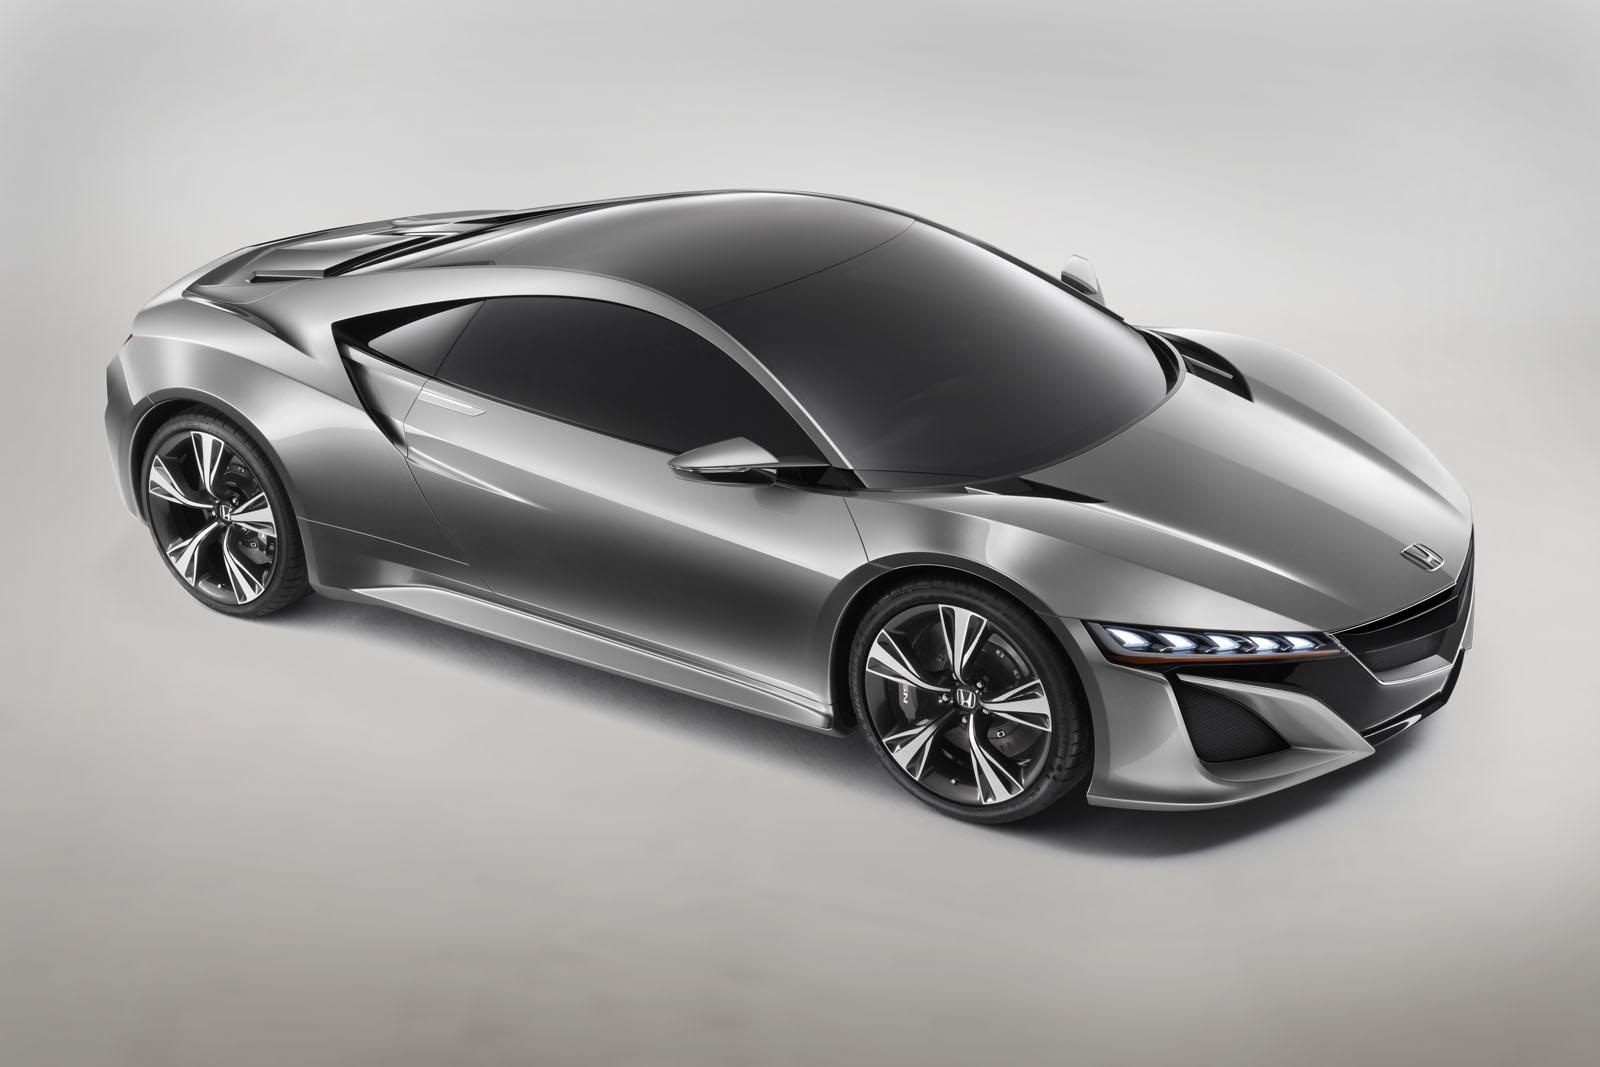 2012 Honda NSX Concept Announcement for Earth Dreams engine by Honda